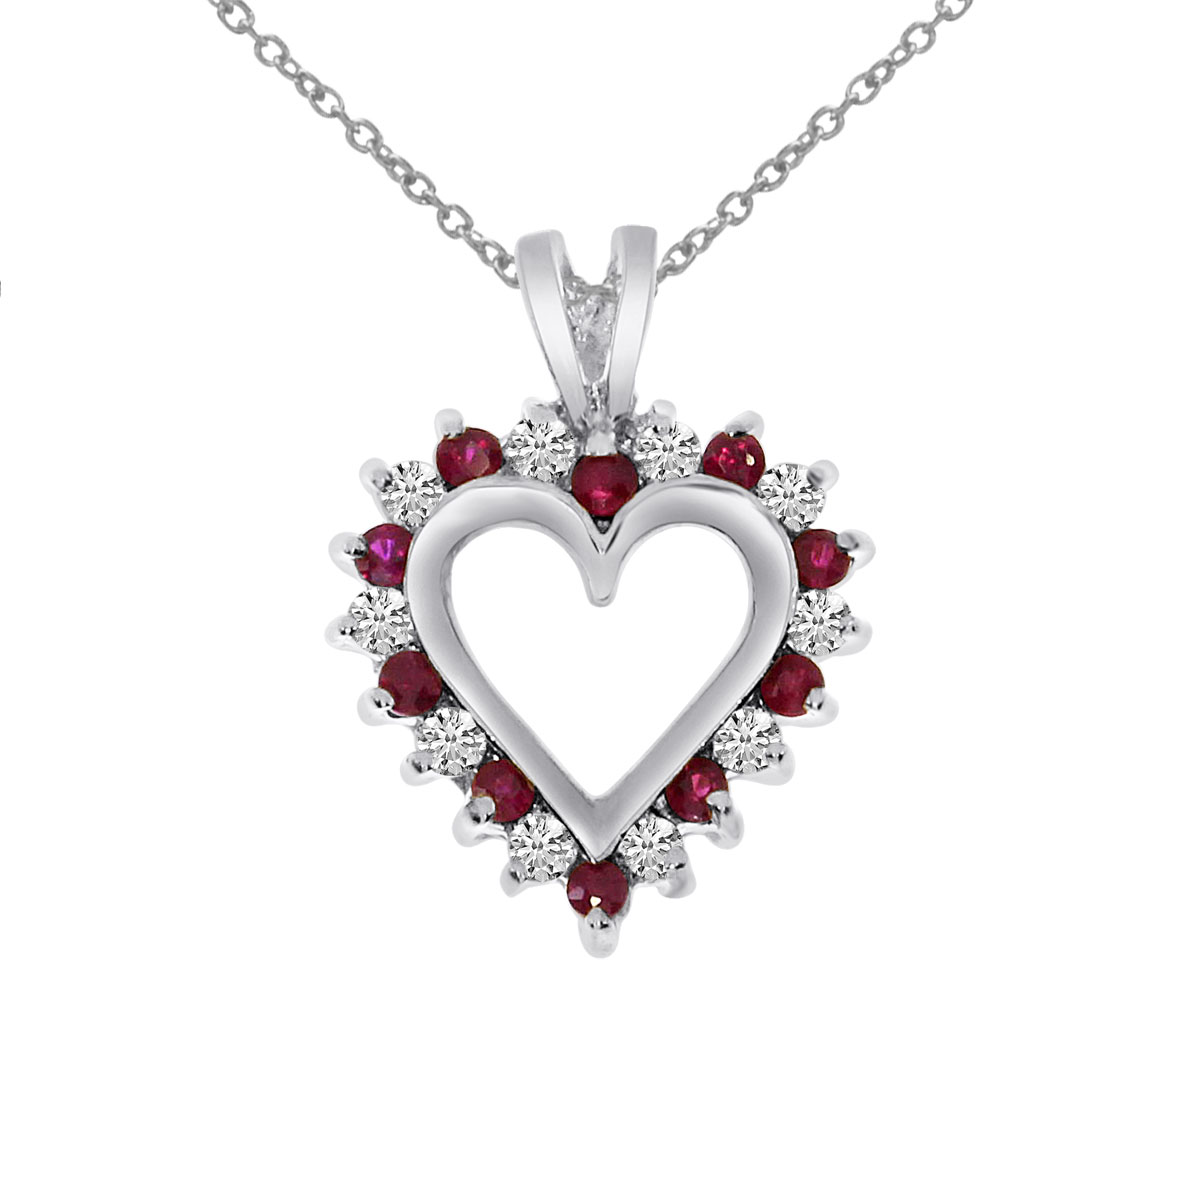 A dazzling 14k white gold heart pendant surrounded by .25 carats of shimmering diamonds and .25 c...